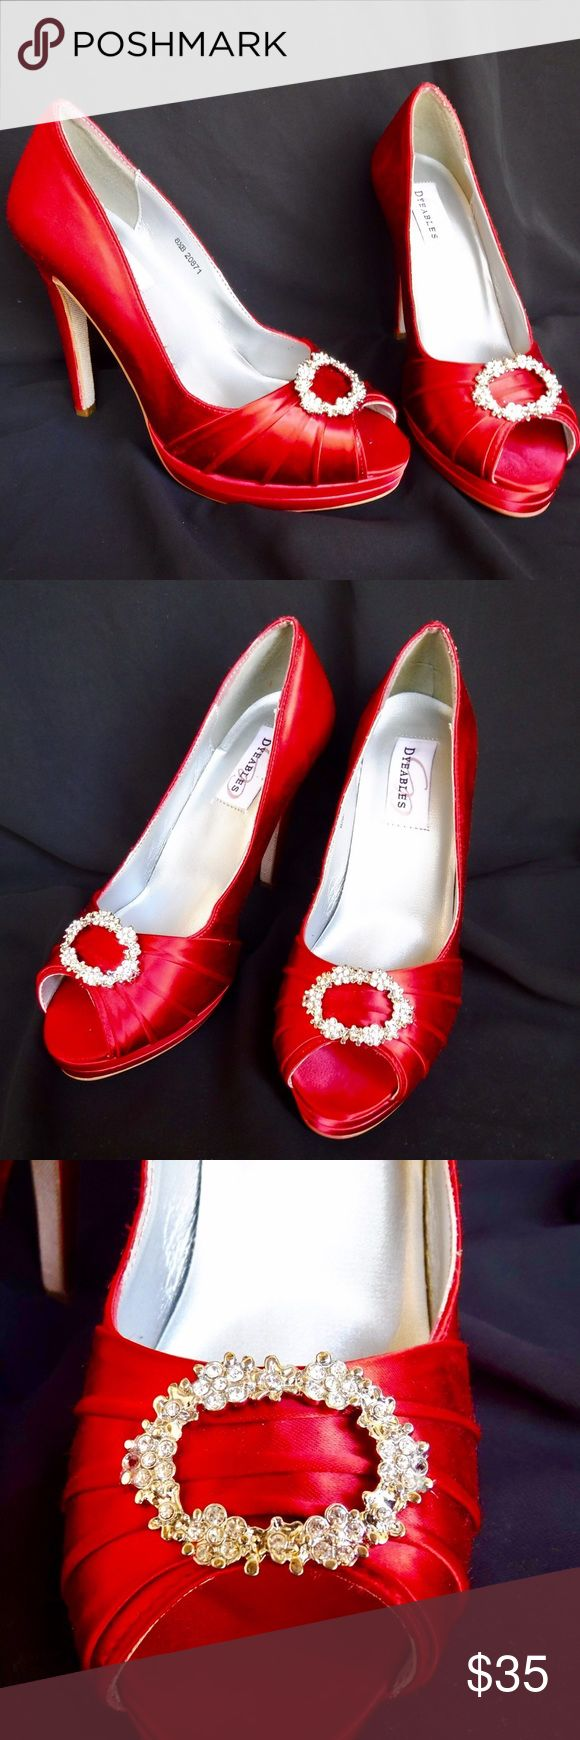 """Ruby Red Platform Peep-Toe Pumps NWOT Dyeables Ruby Red Satin Platform Pumps in style Gianna. These have never been worn and are in perfect condition. I just don't have the box any longer. Shoe has a sparkly jewel encrusted accent piece to make any special occasion outfit really shine! Size 8.5, man made materials with a leather sole. Heel height is 4"""". Dyeables Shoes"""